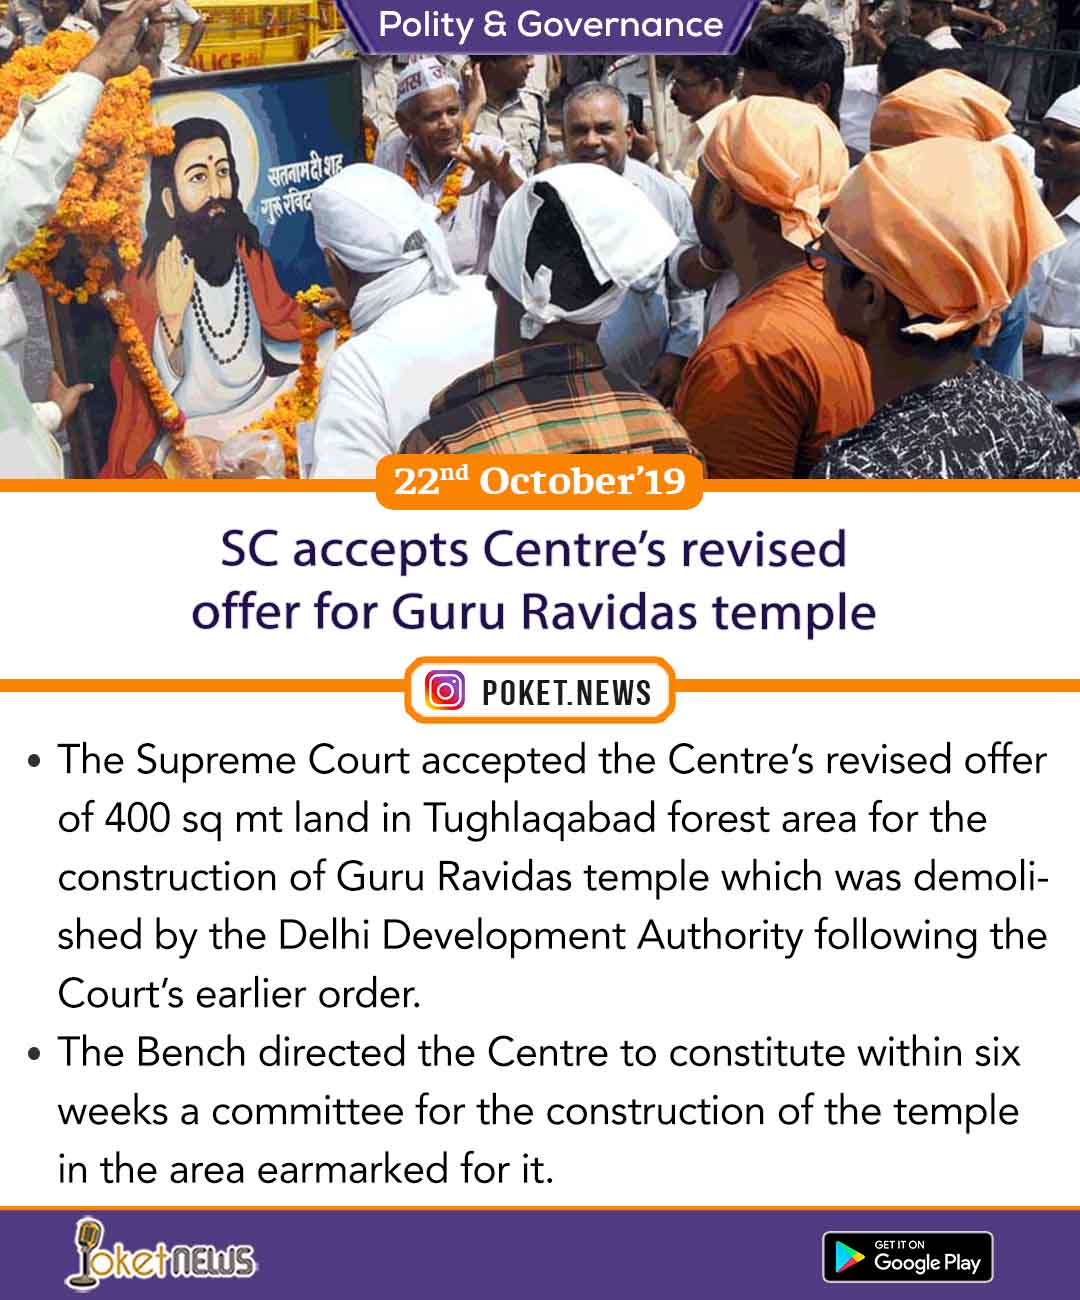 SC accepts Centre's revised offer for Guru Ravidas temple